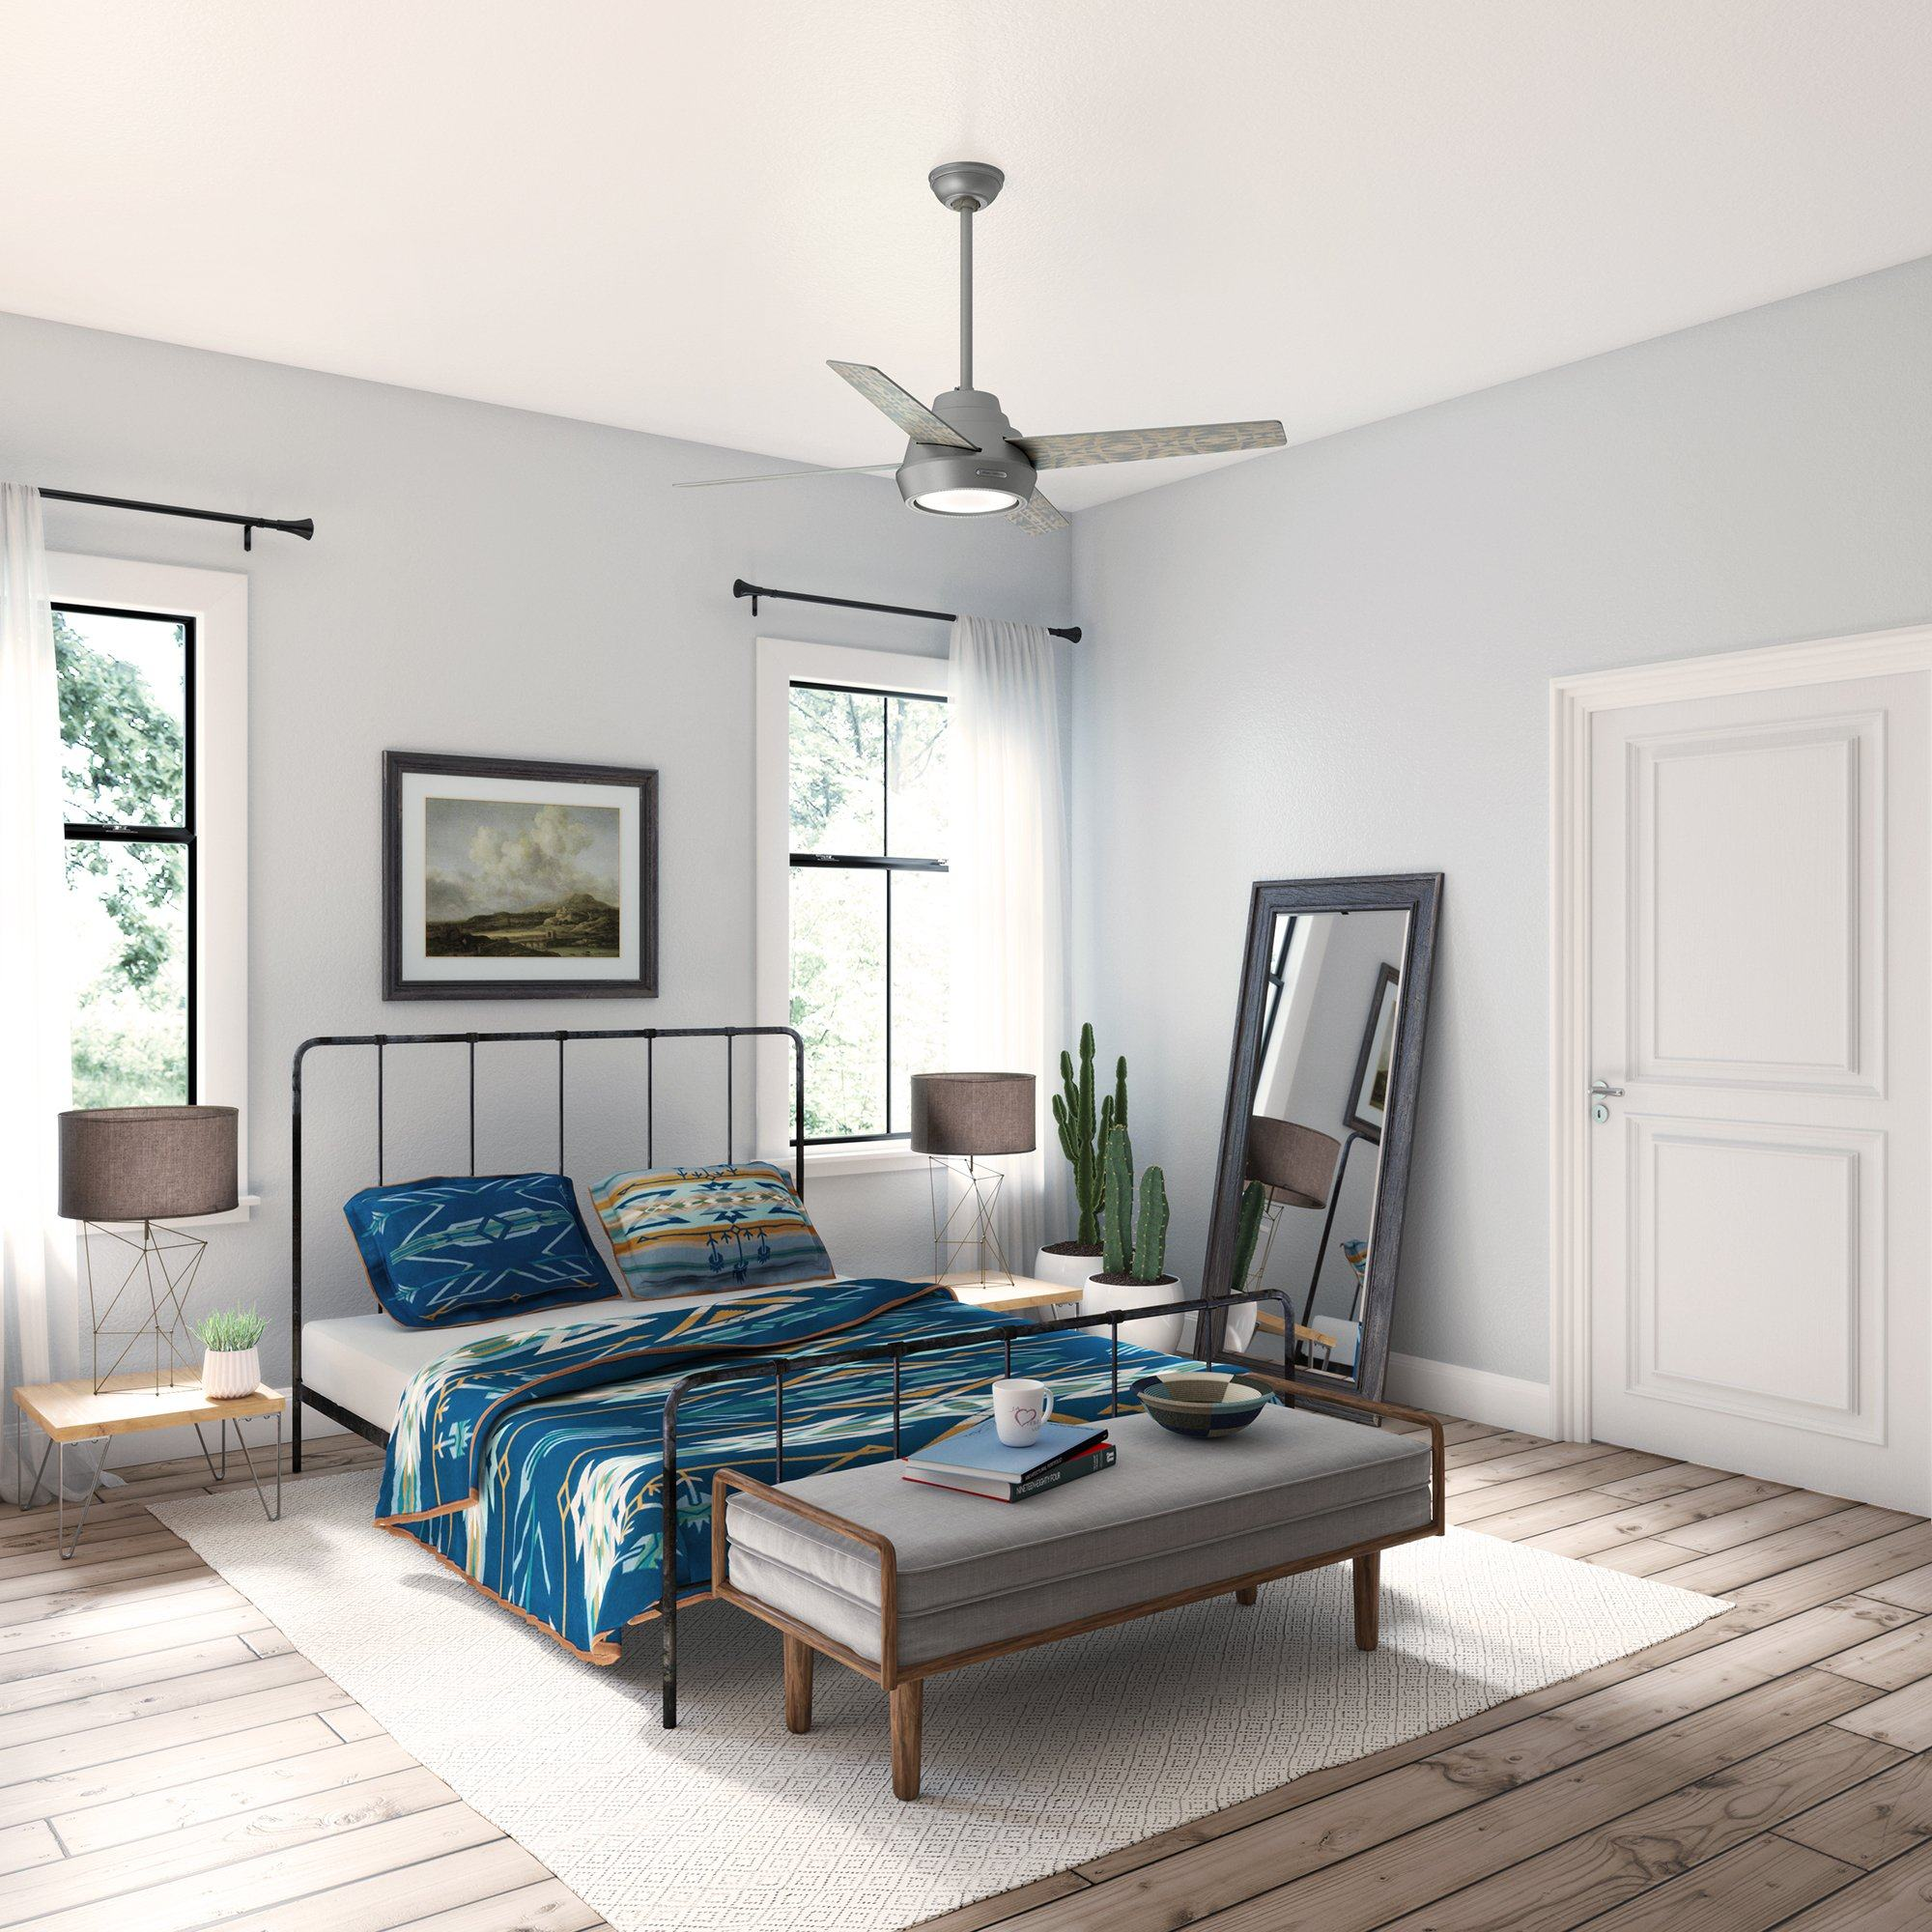 Bedroom Ceiling Fan Ideas To Transform Your Space Hunter Fan